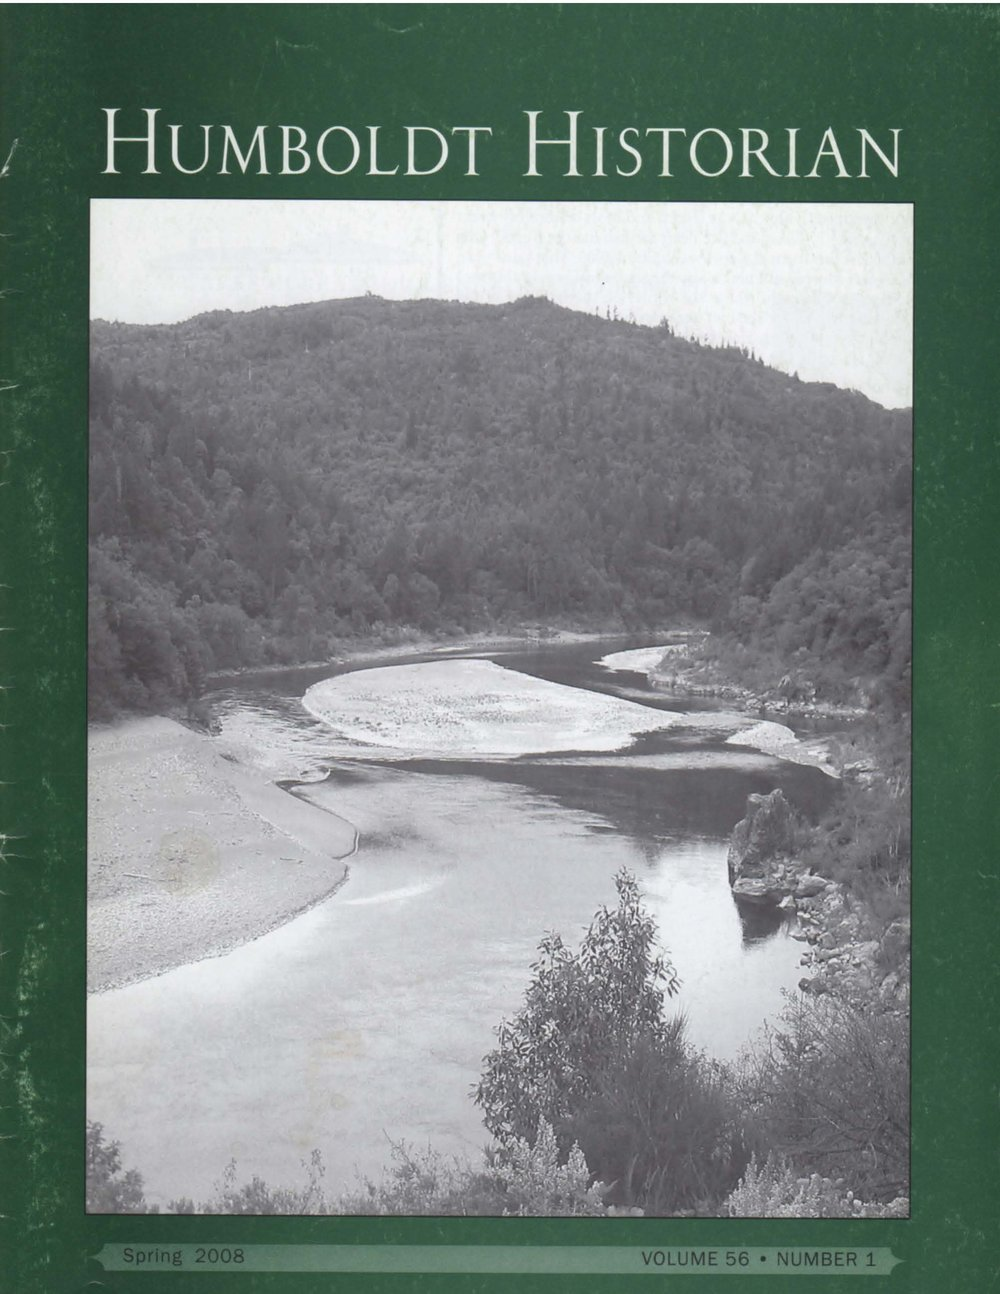 HH Cover Spring 08.jpg